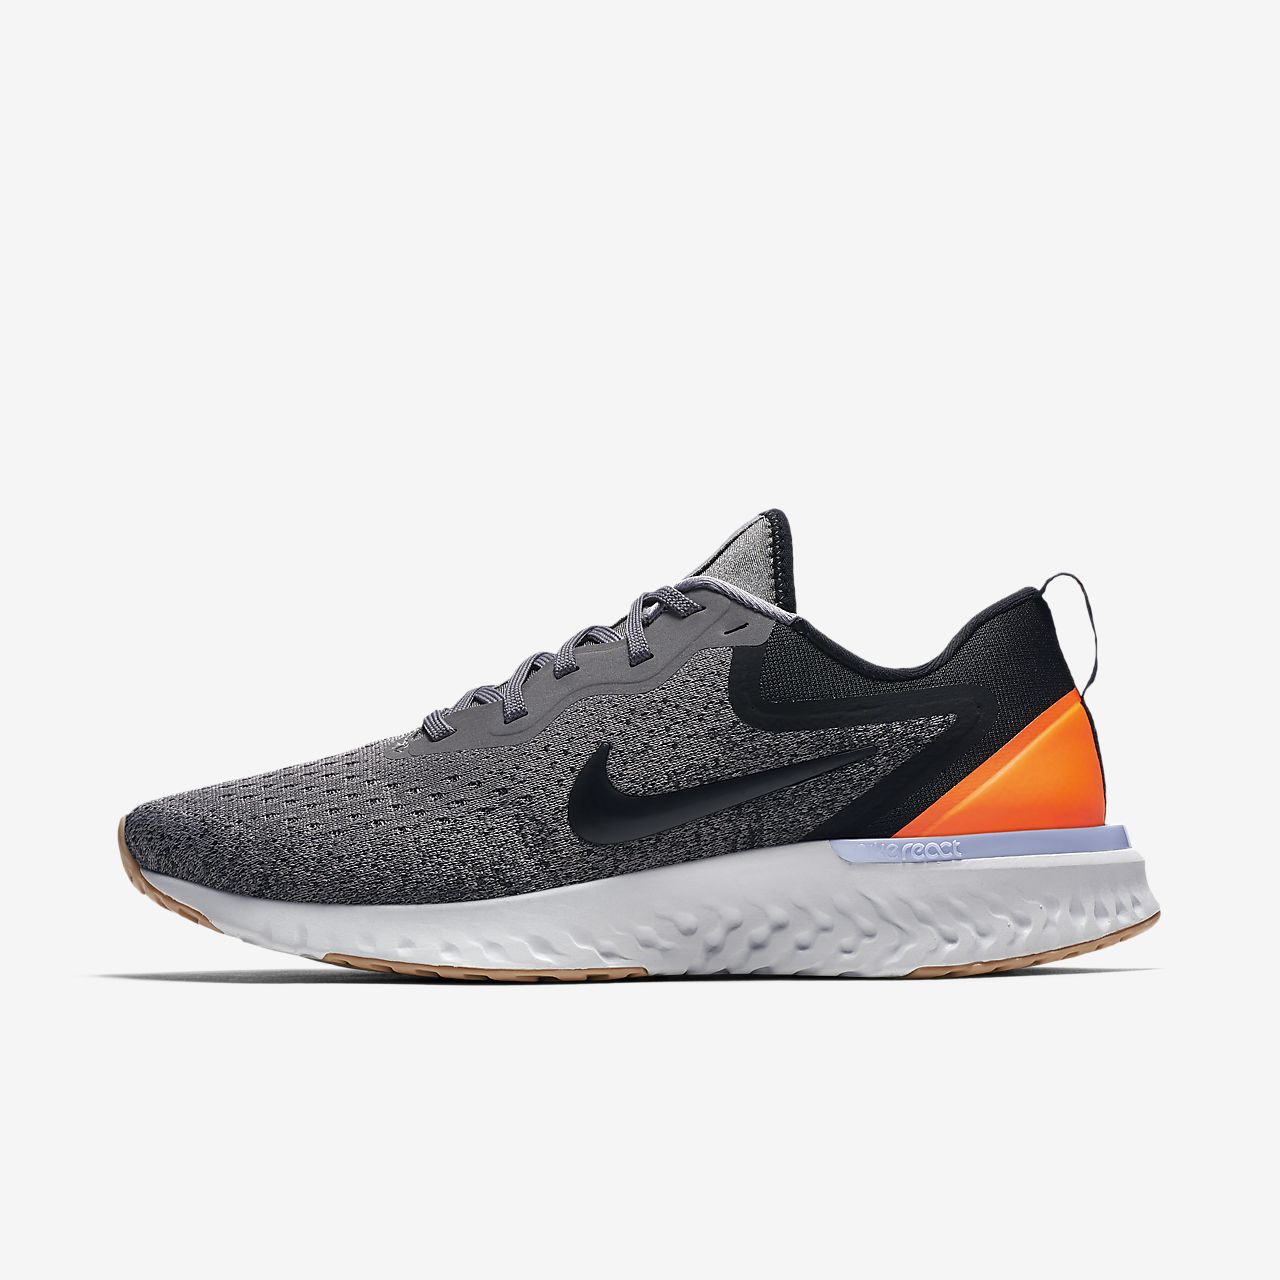 on sale 69297 64500 Womens Running Shoe. Nike Odyssey React